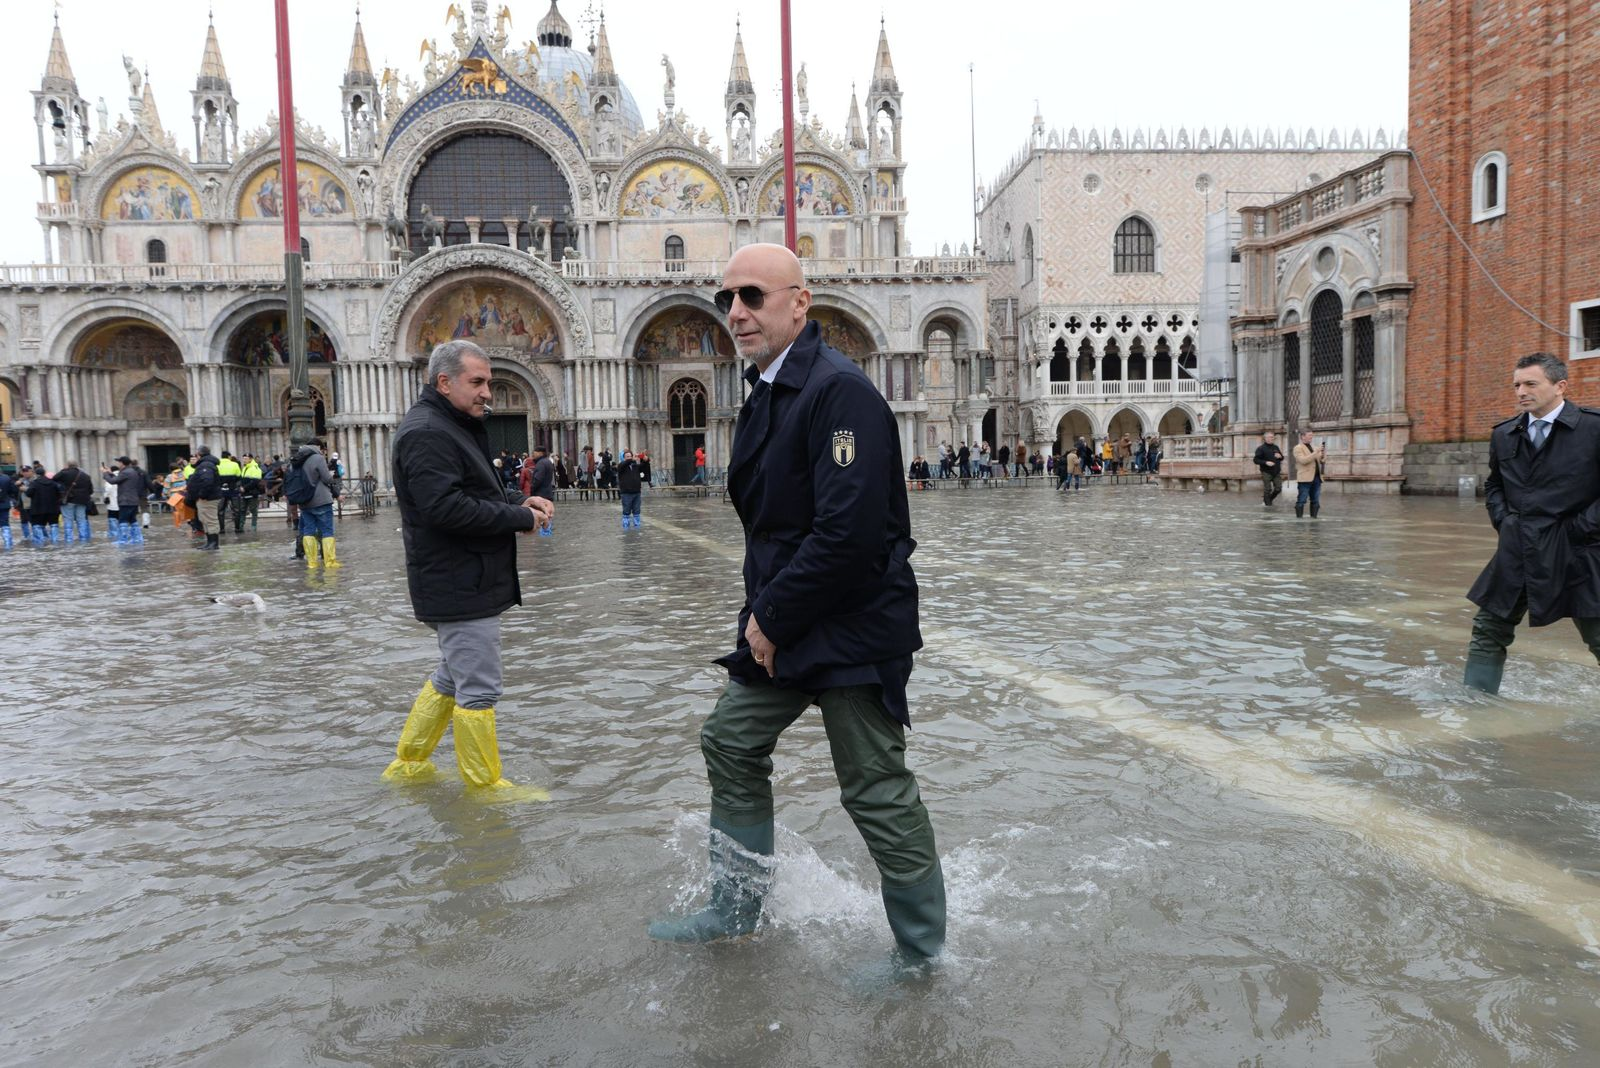 Italy's team manager Gianluca Vialli is seen in St. Mark's Square during a solidarity visit to Venice following the exceptional high water that brought the city to its knees, in Venice, northern Italy, Saturday, Nov. 16, 2019. Four days ago, the Italian lagoon city experienced its worst flooding in more than 50 years. (Andrea Merola/ANSA via AP)